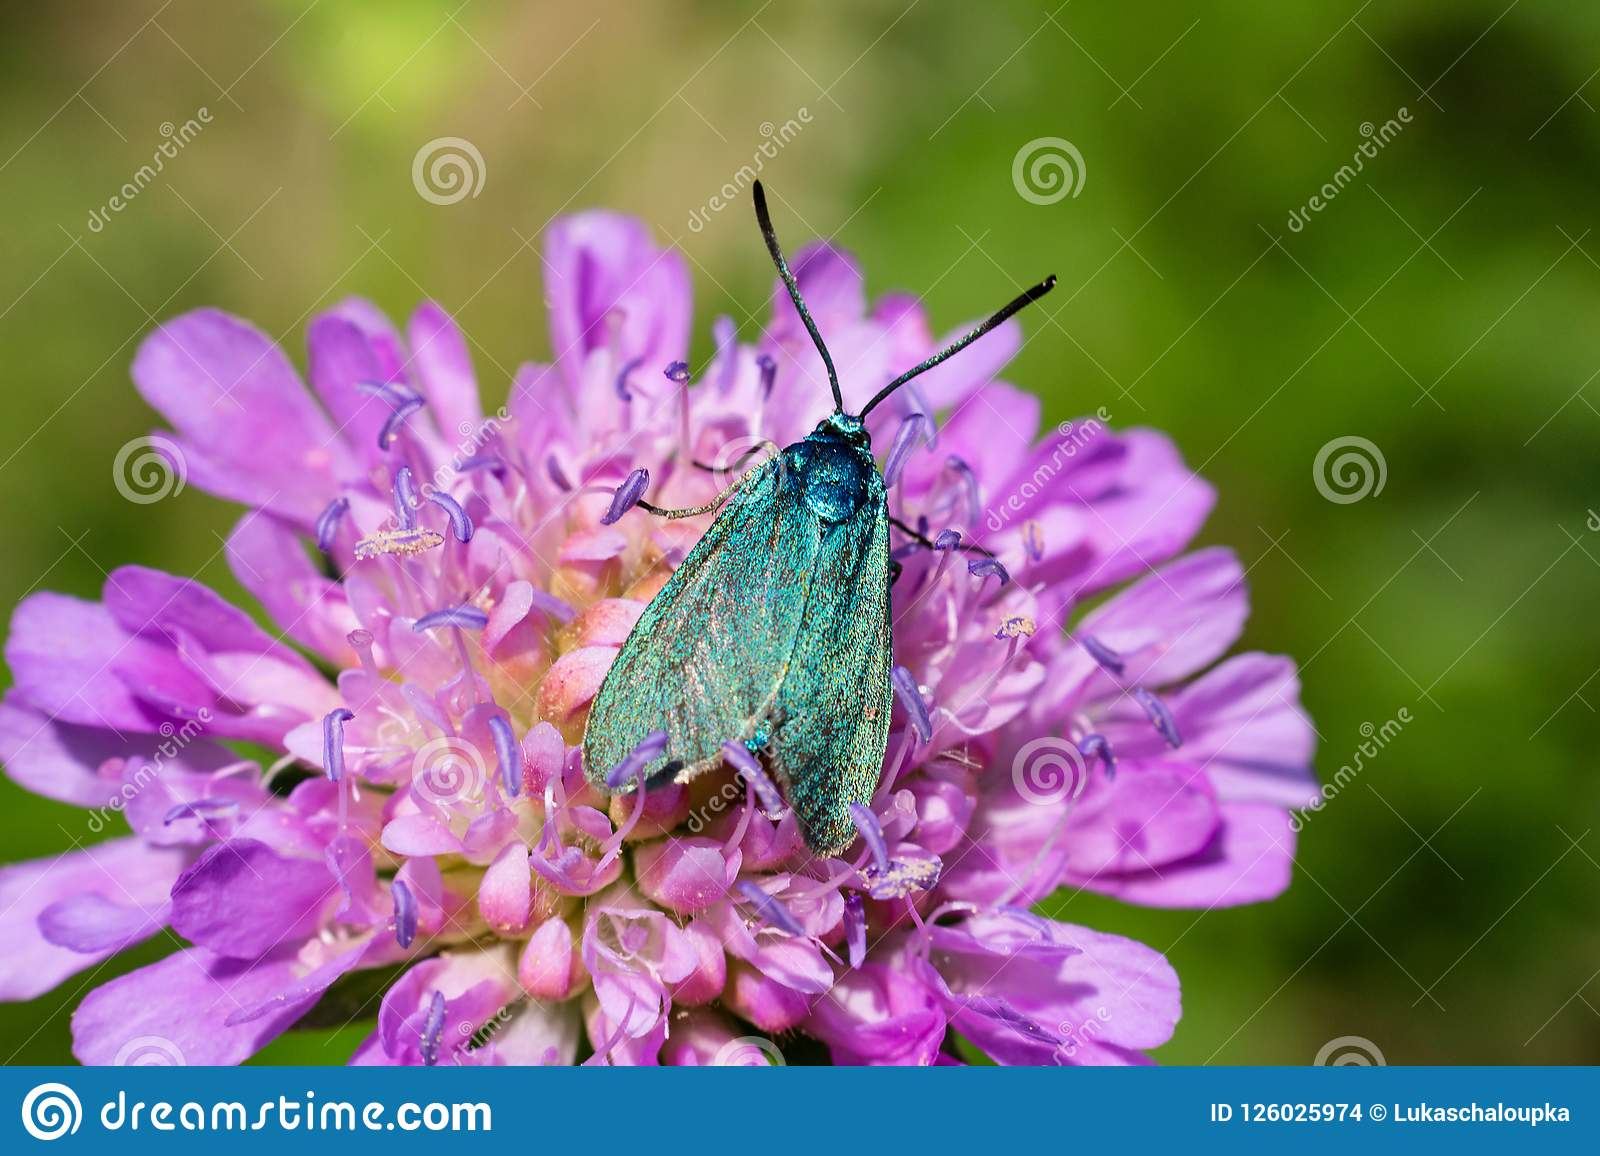 Nice blue butterfly on flower blossom, macro photo